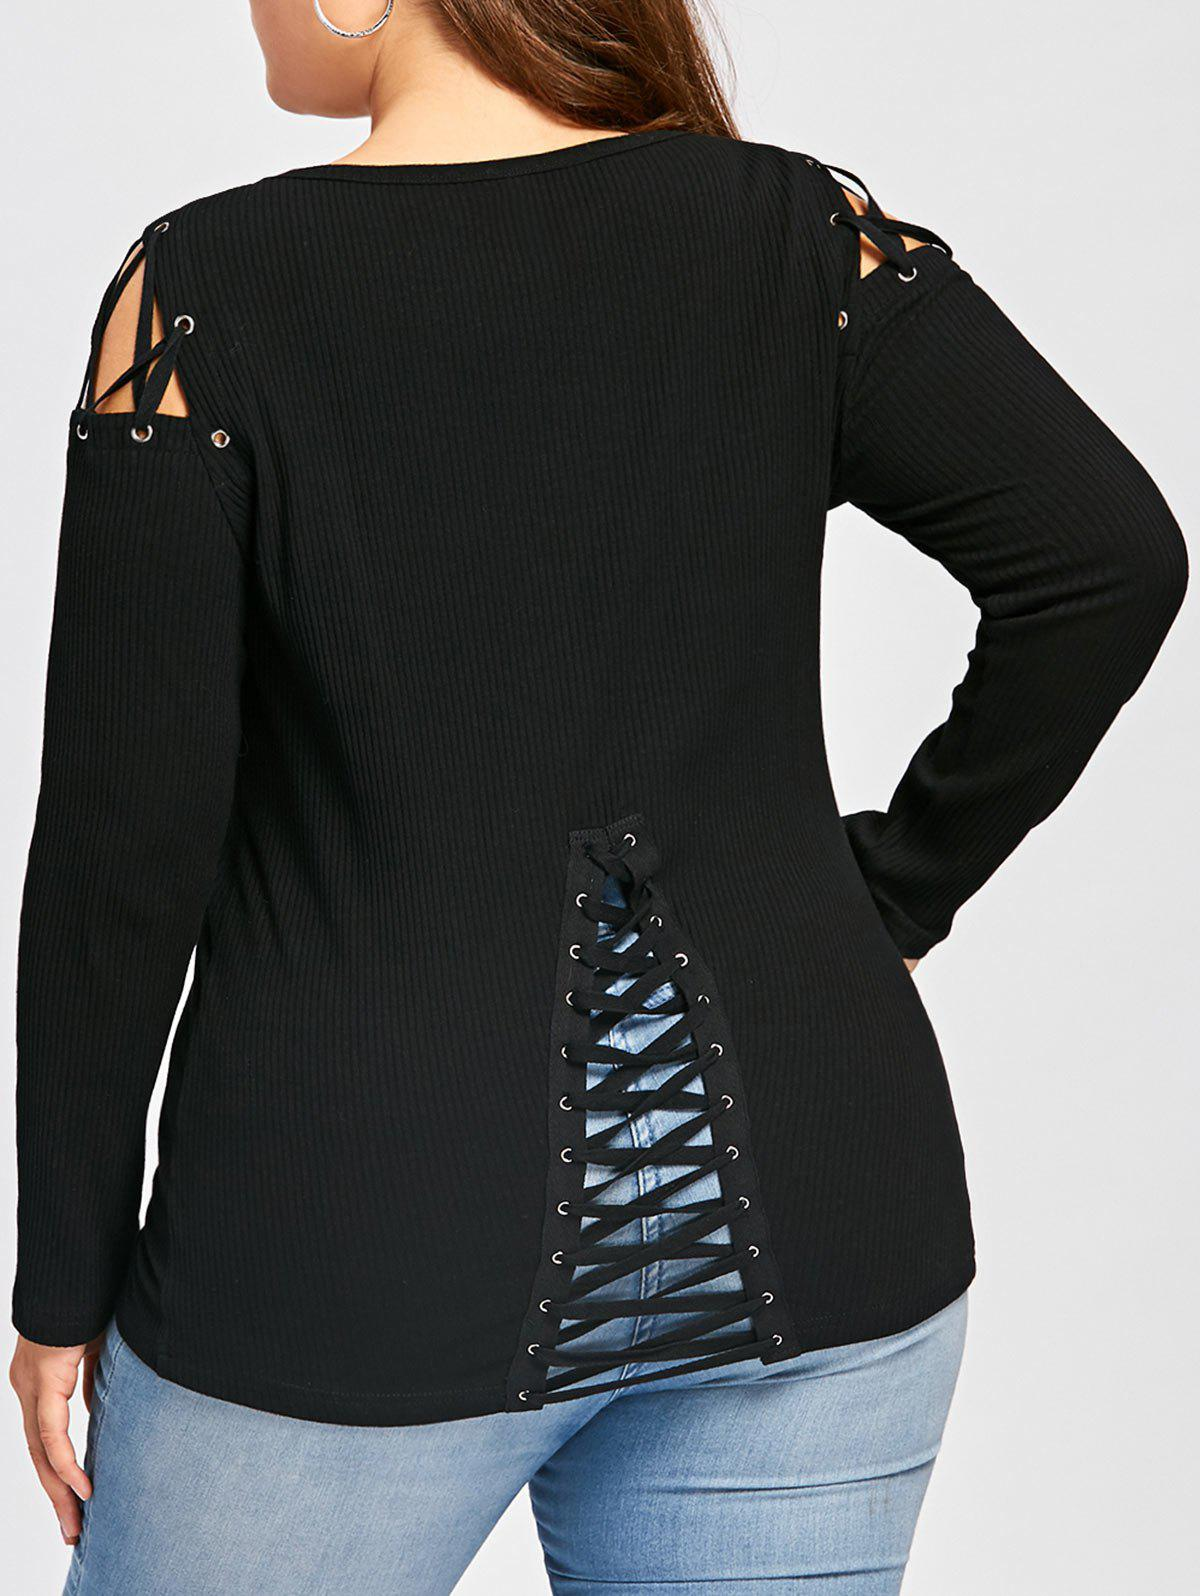 Plus Size Criss Cross Long Sleeve Ribbed TopWOMEN<br><br>Size: XL; Color: BLACK; Material: Polyester,Spandex; Shirt Length: Long; Sleeve Length: Full; Collar: Scoop Neck; Style: Fashion; Season: Fall,Spring; Embellishment: Criss-Cross; Pattern Type: Striped; Weight: 0.3100kg; Package Contents: 1 x T-shirt;